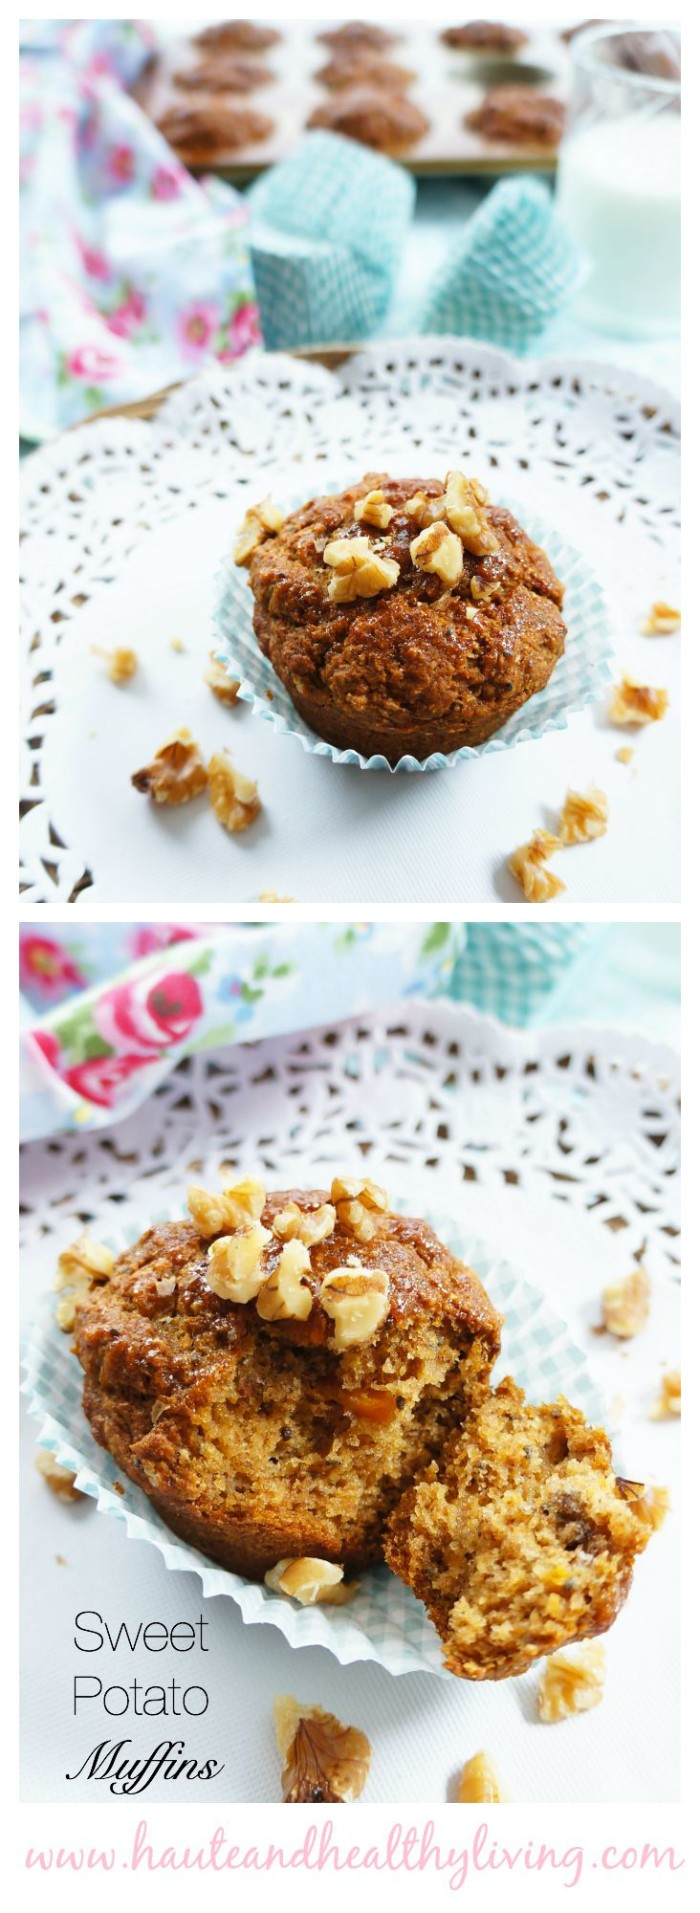 Sweet Potato Muffins | Haute & Healthy Living